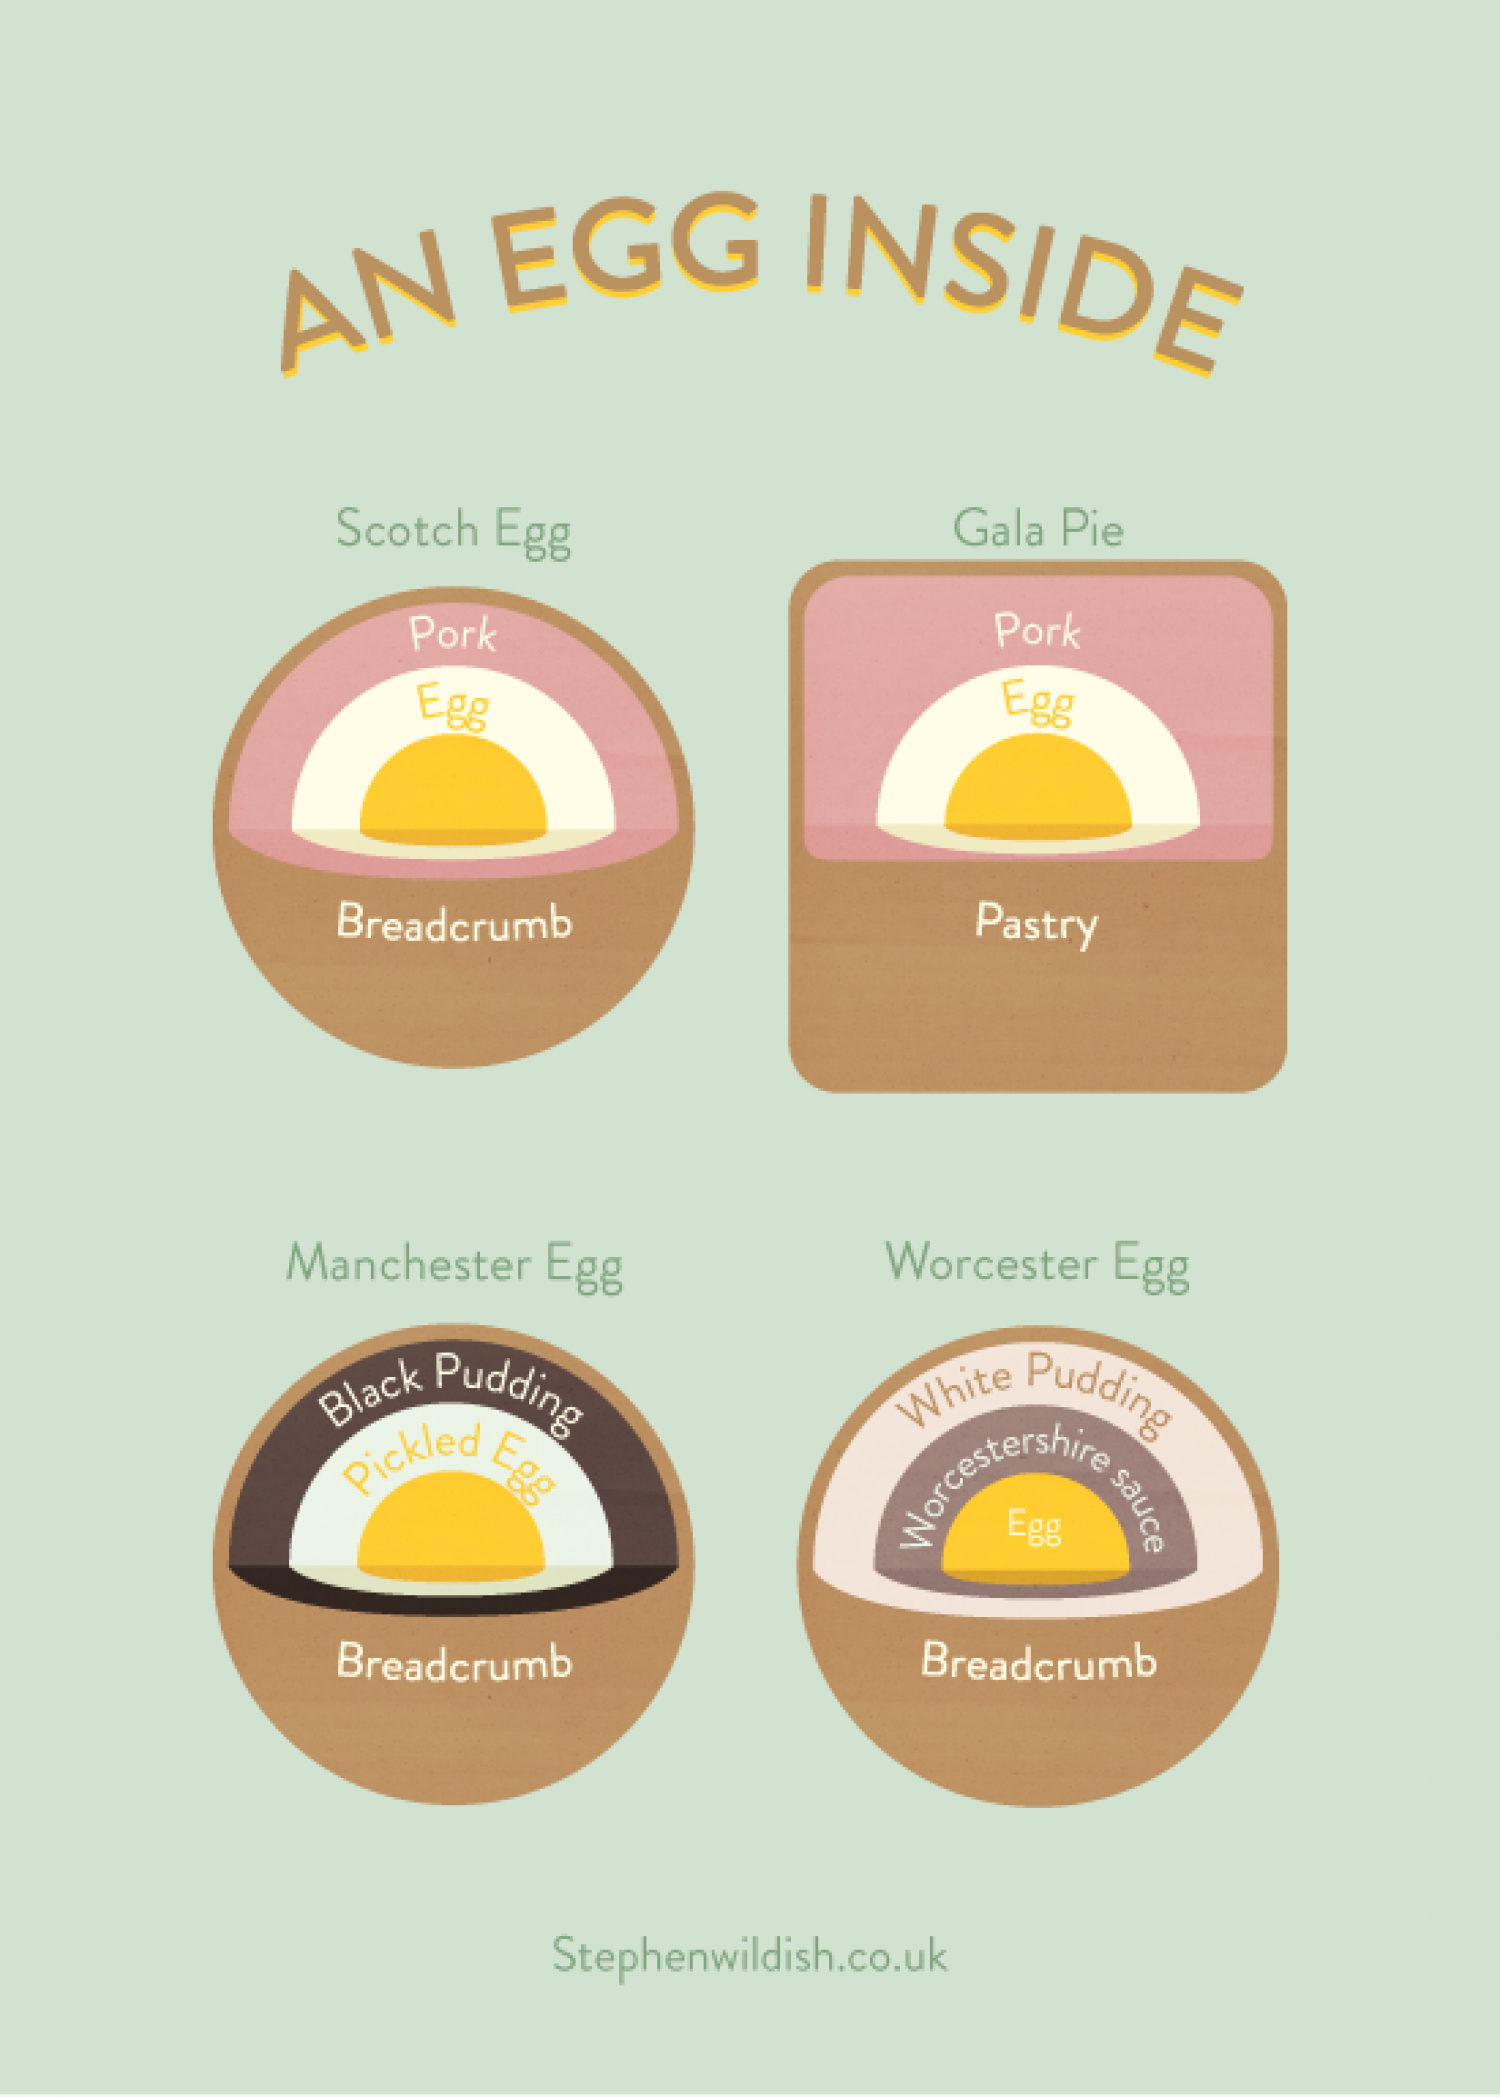 An egg inside Infographic